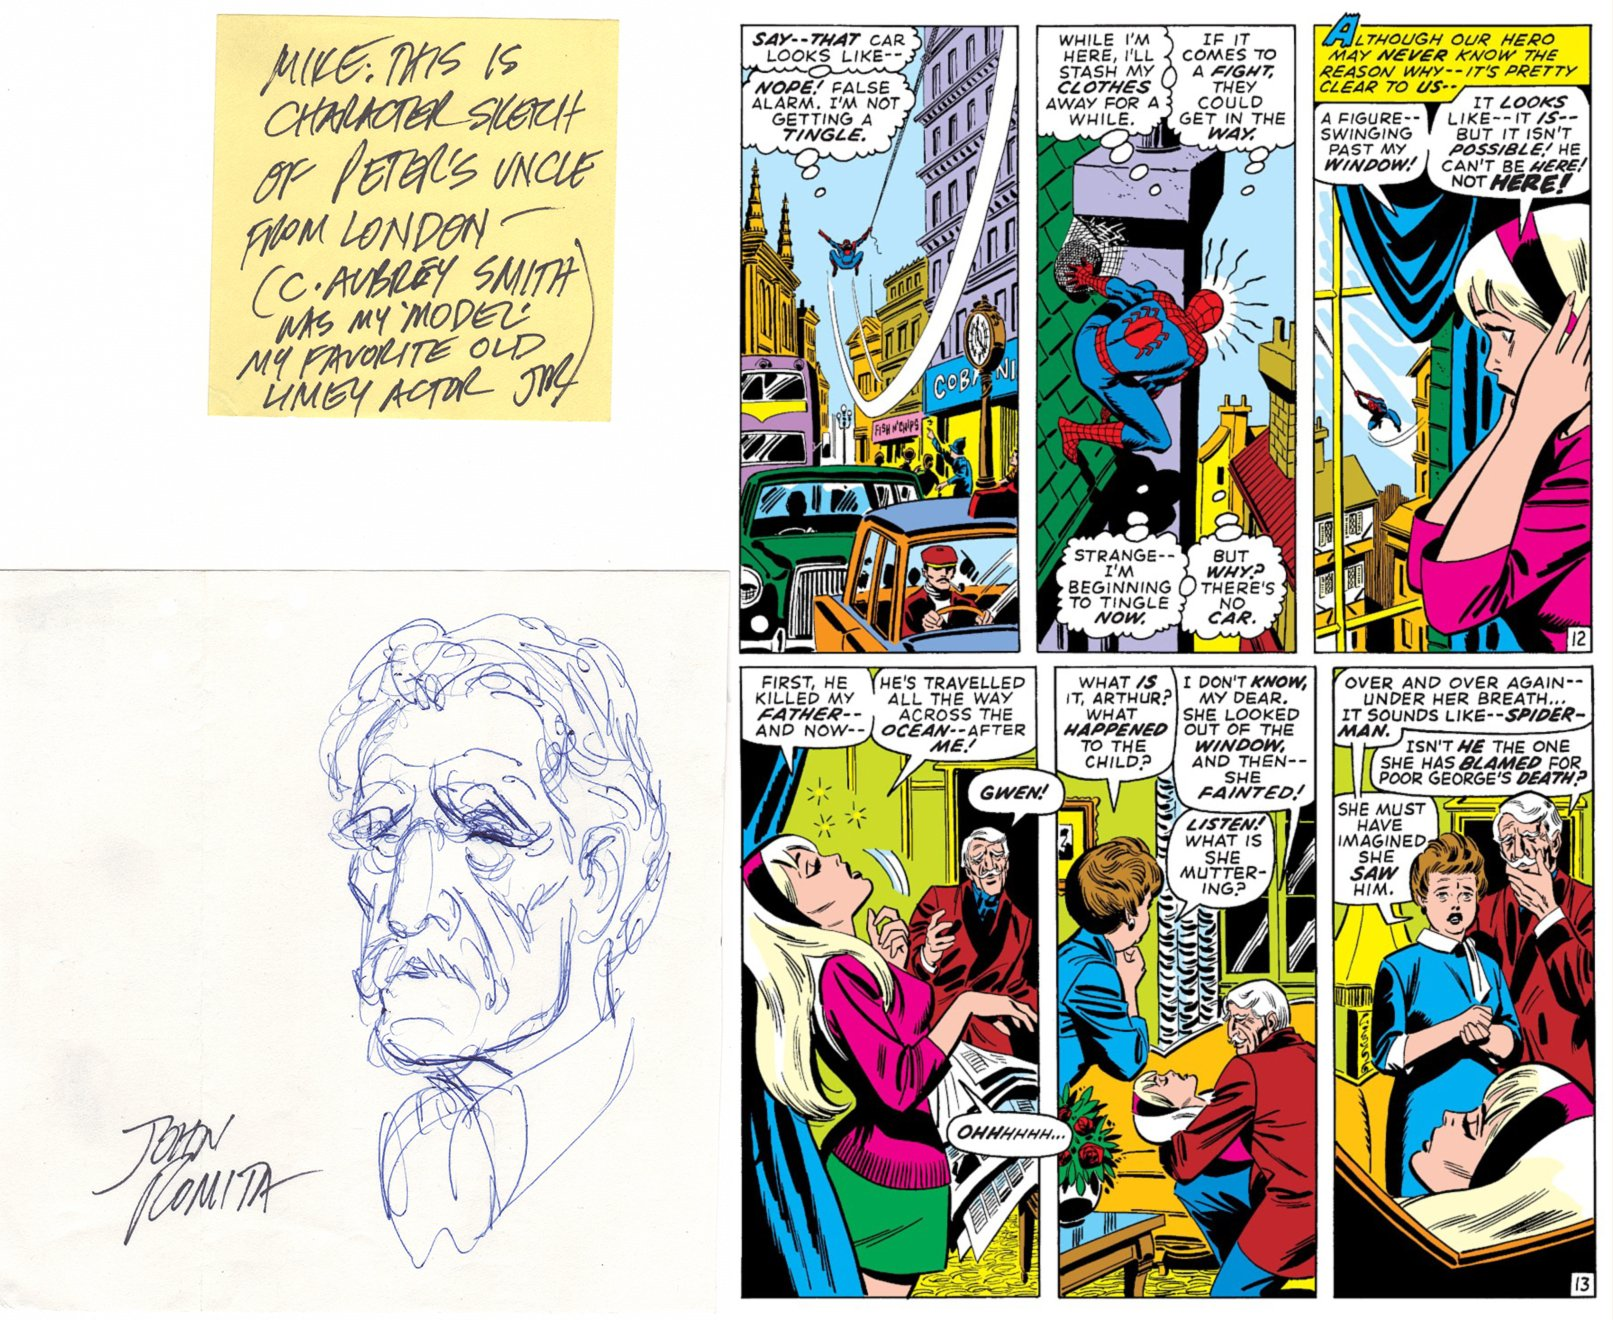 Arthur Stacy: Capt Stacy's Brother, 1st Drawing For ASM 95 (SOLD LIVE ON 'DUELING DEALERS OF COMIC ART' EPISODE #30 PODCAST ON 8-9-2021 (RE-WATCH THIS FUNNY ART SELLING SHOW HERE)